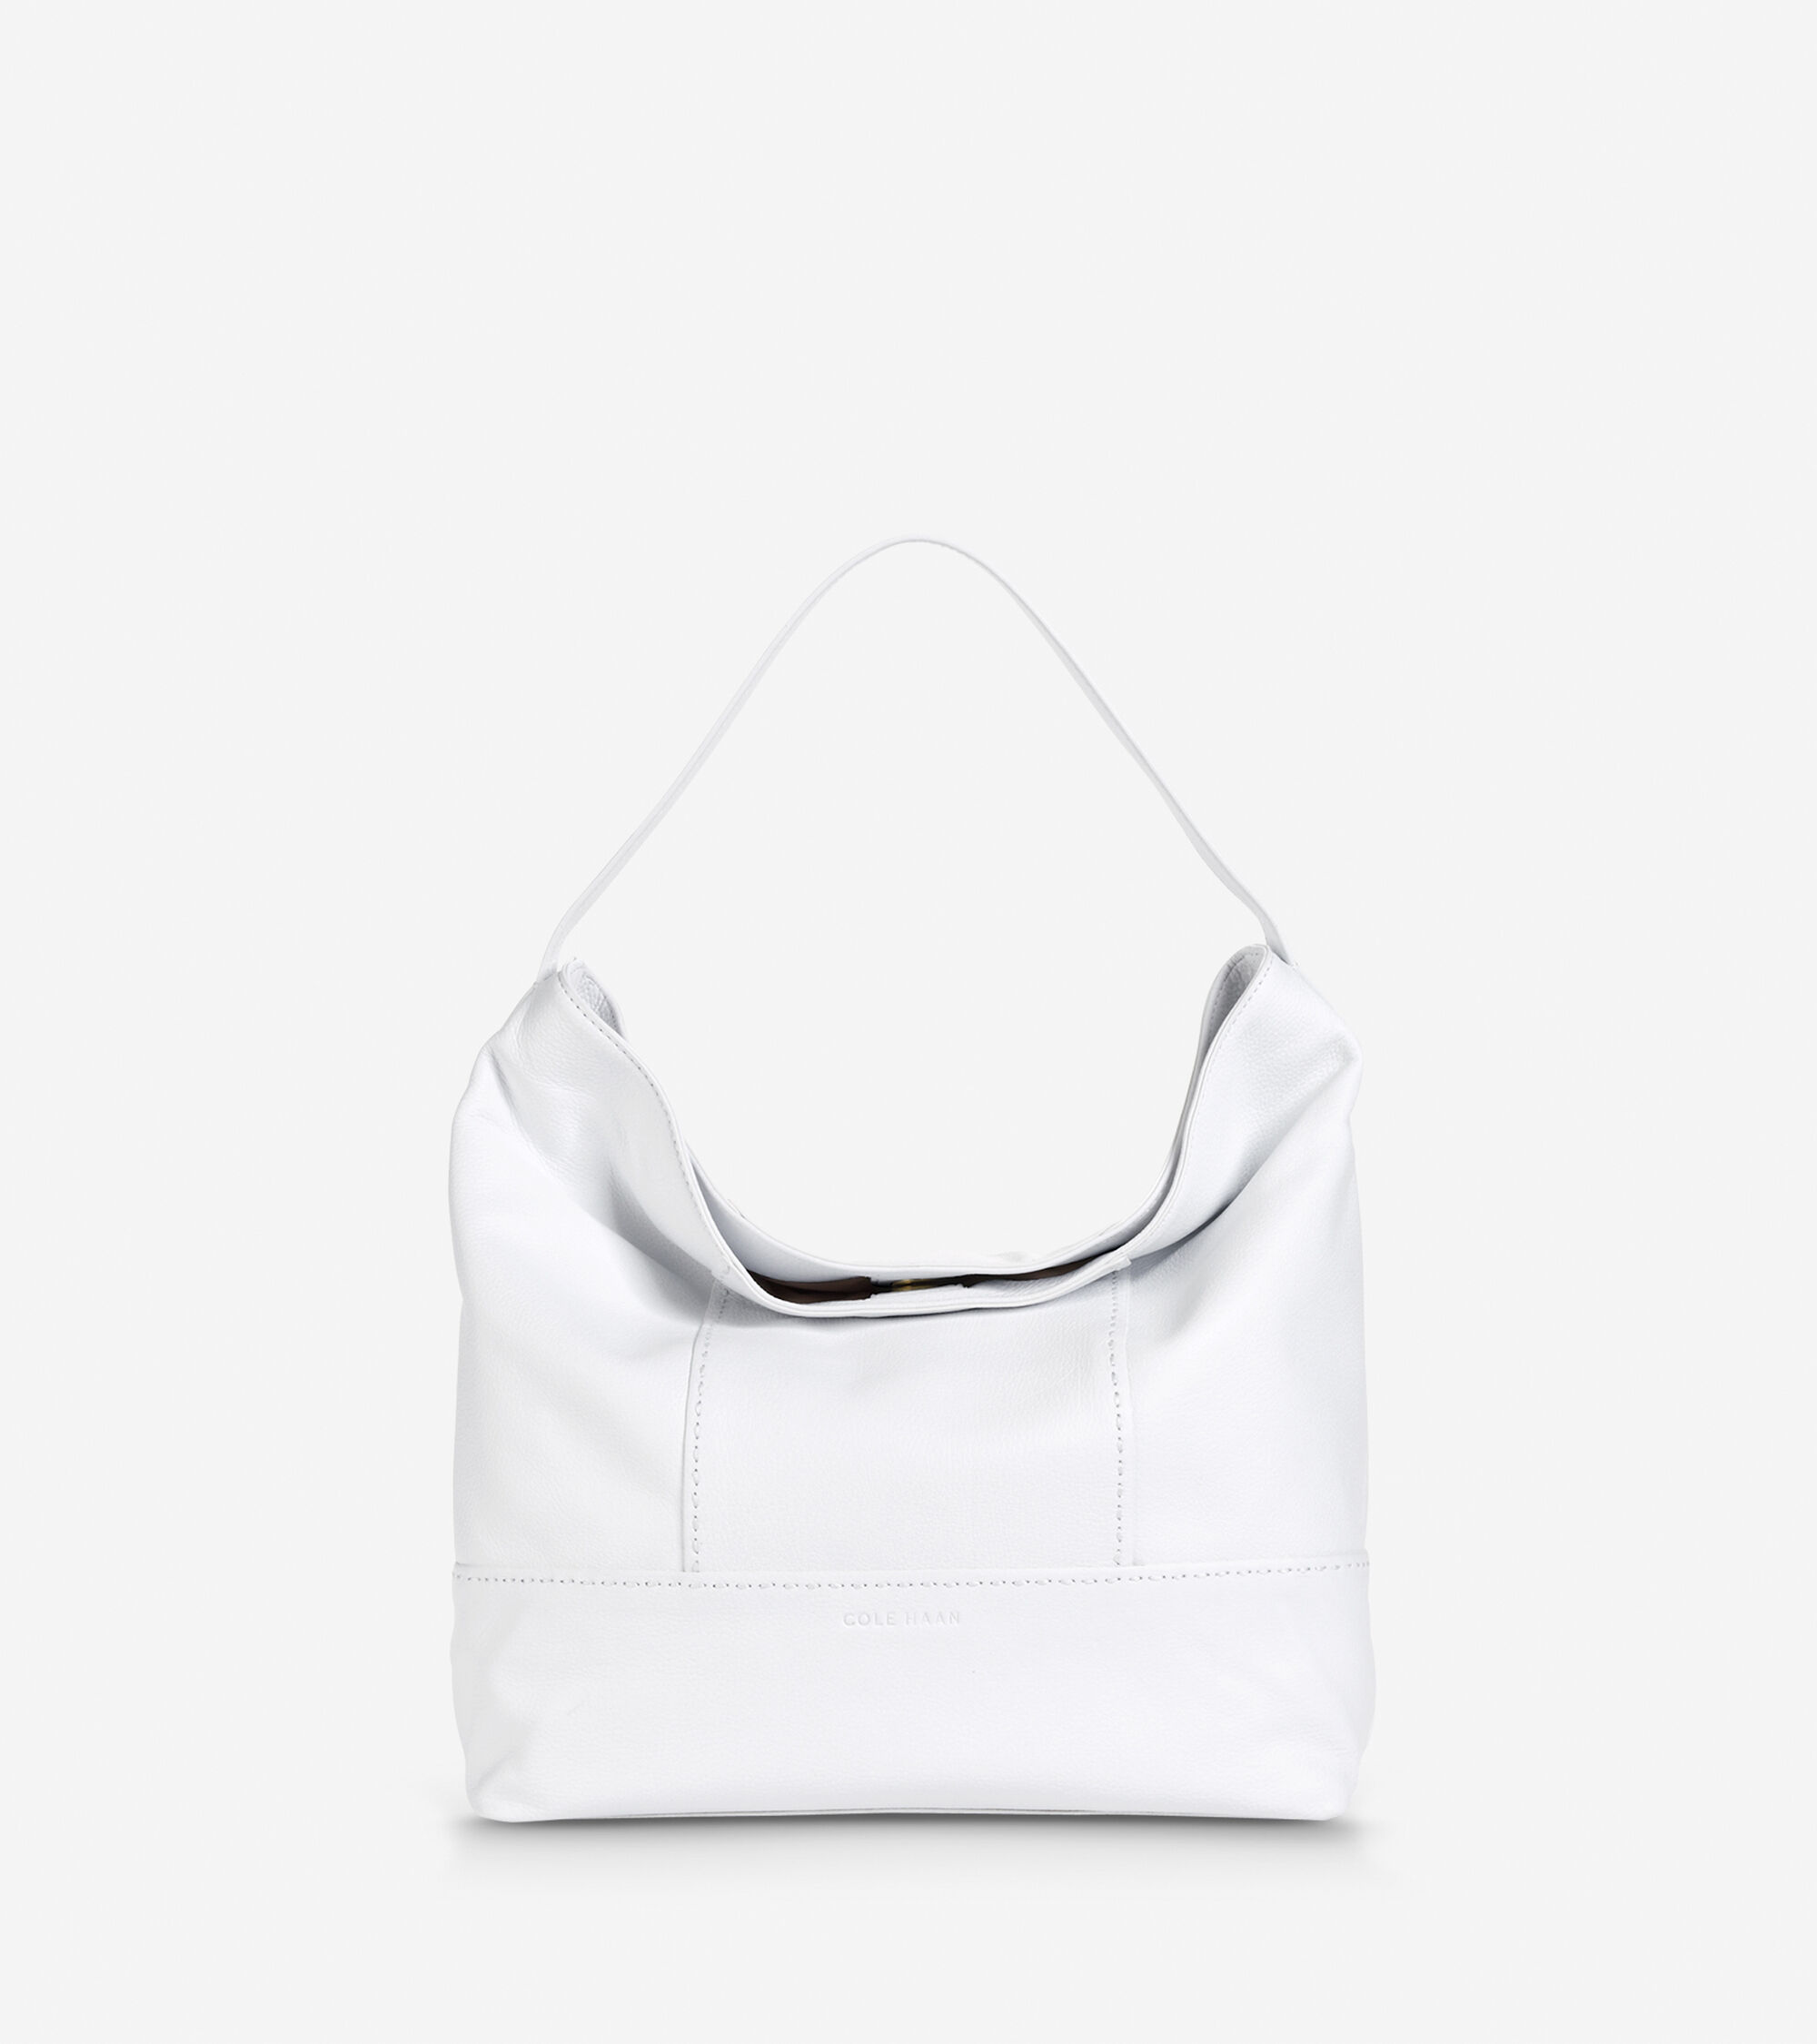 Accessories > Elinor Hobo